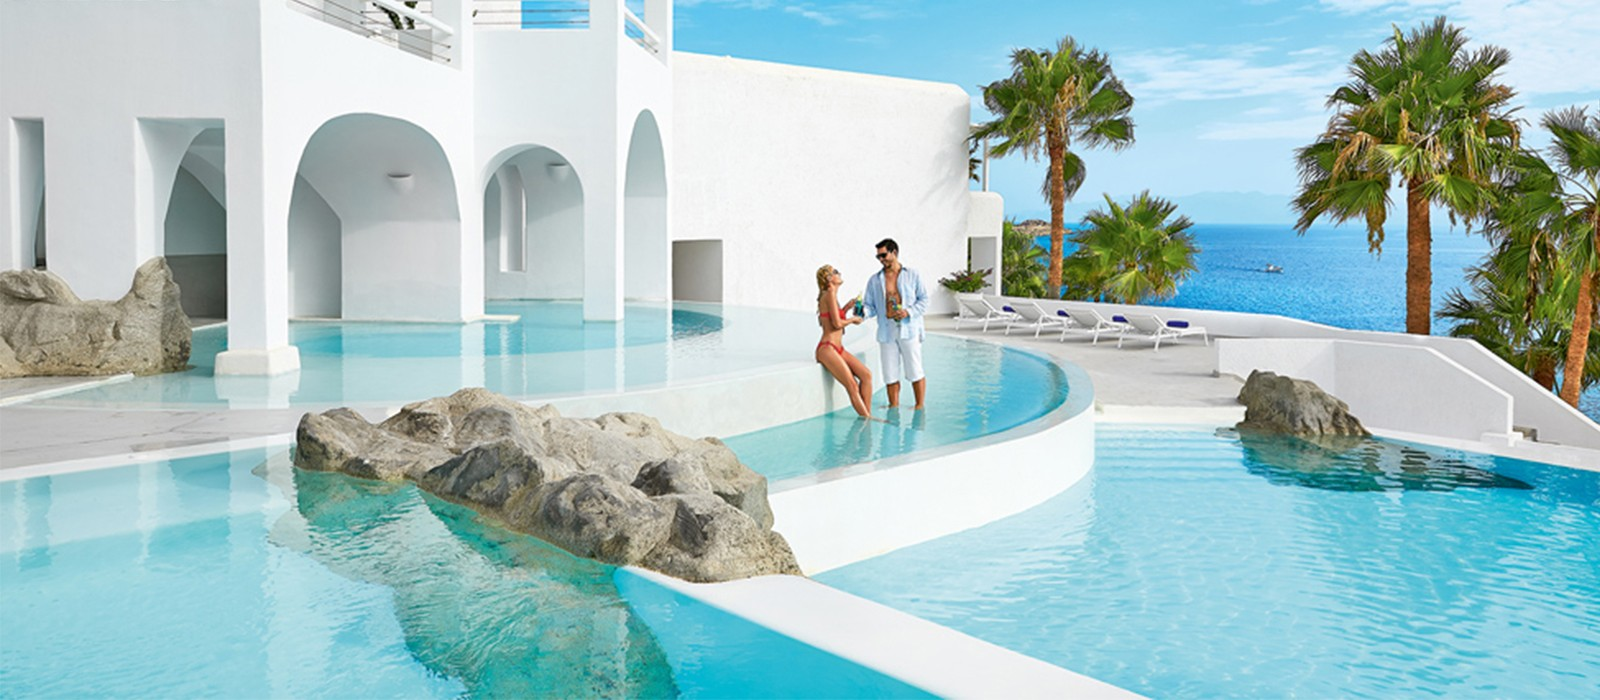 Luxury Holiday Types Tailor Made Holidays Pure